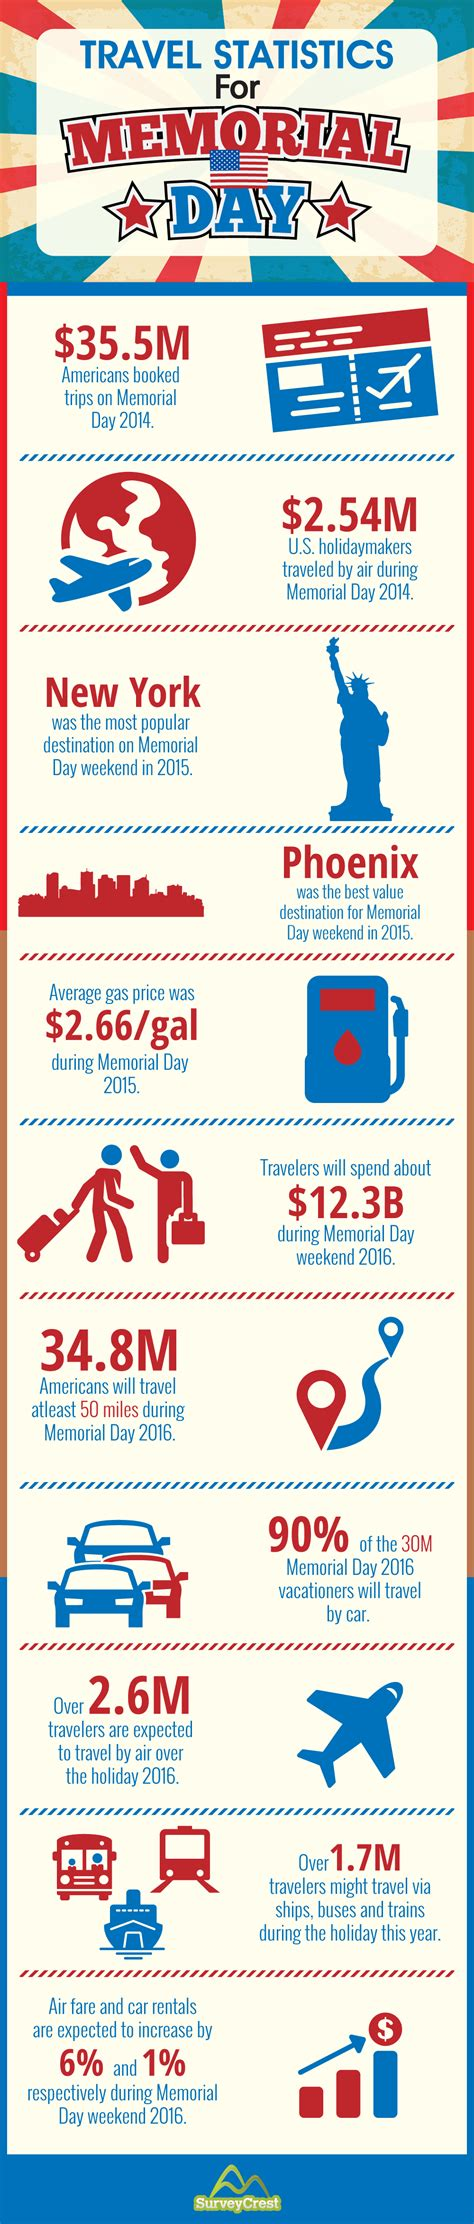 Memorial Day Travel Companion by Infographic Travel Statistics For Memorial Day